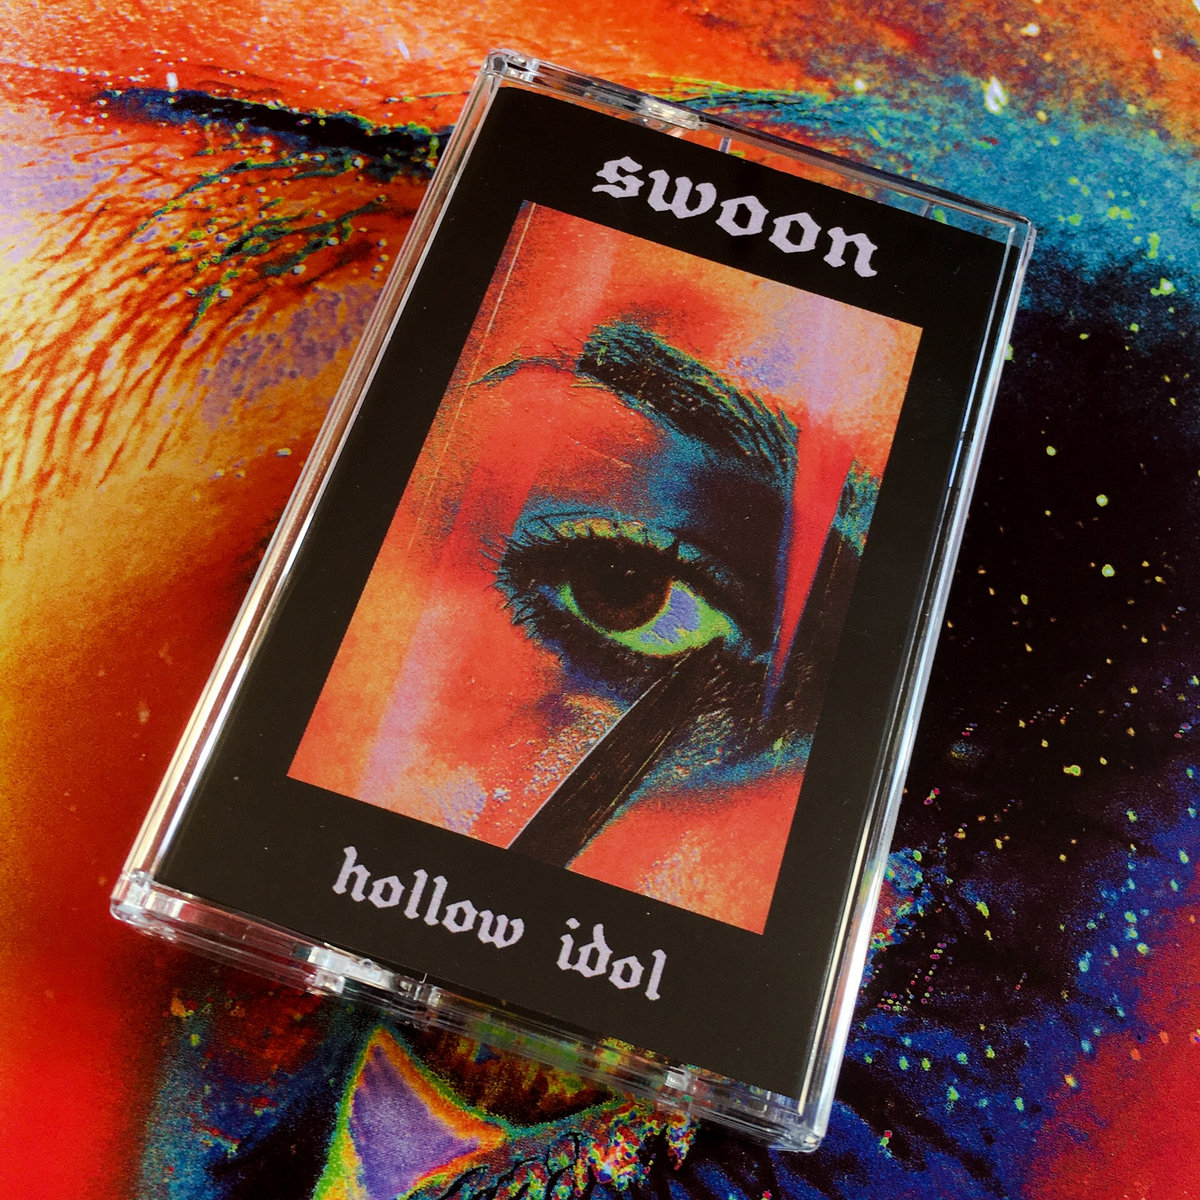 Includes unlimited streaming of Hollow Idol via the free Bandcamp app, plus  high-quality download in MP3, FLAC and more.